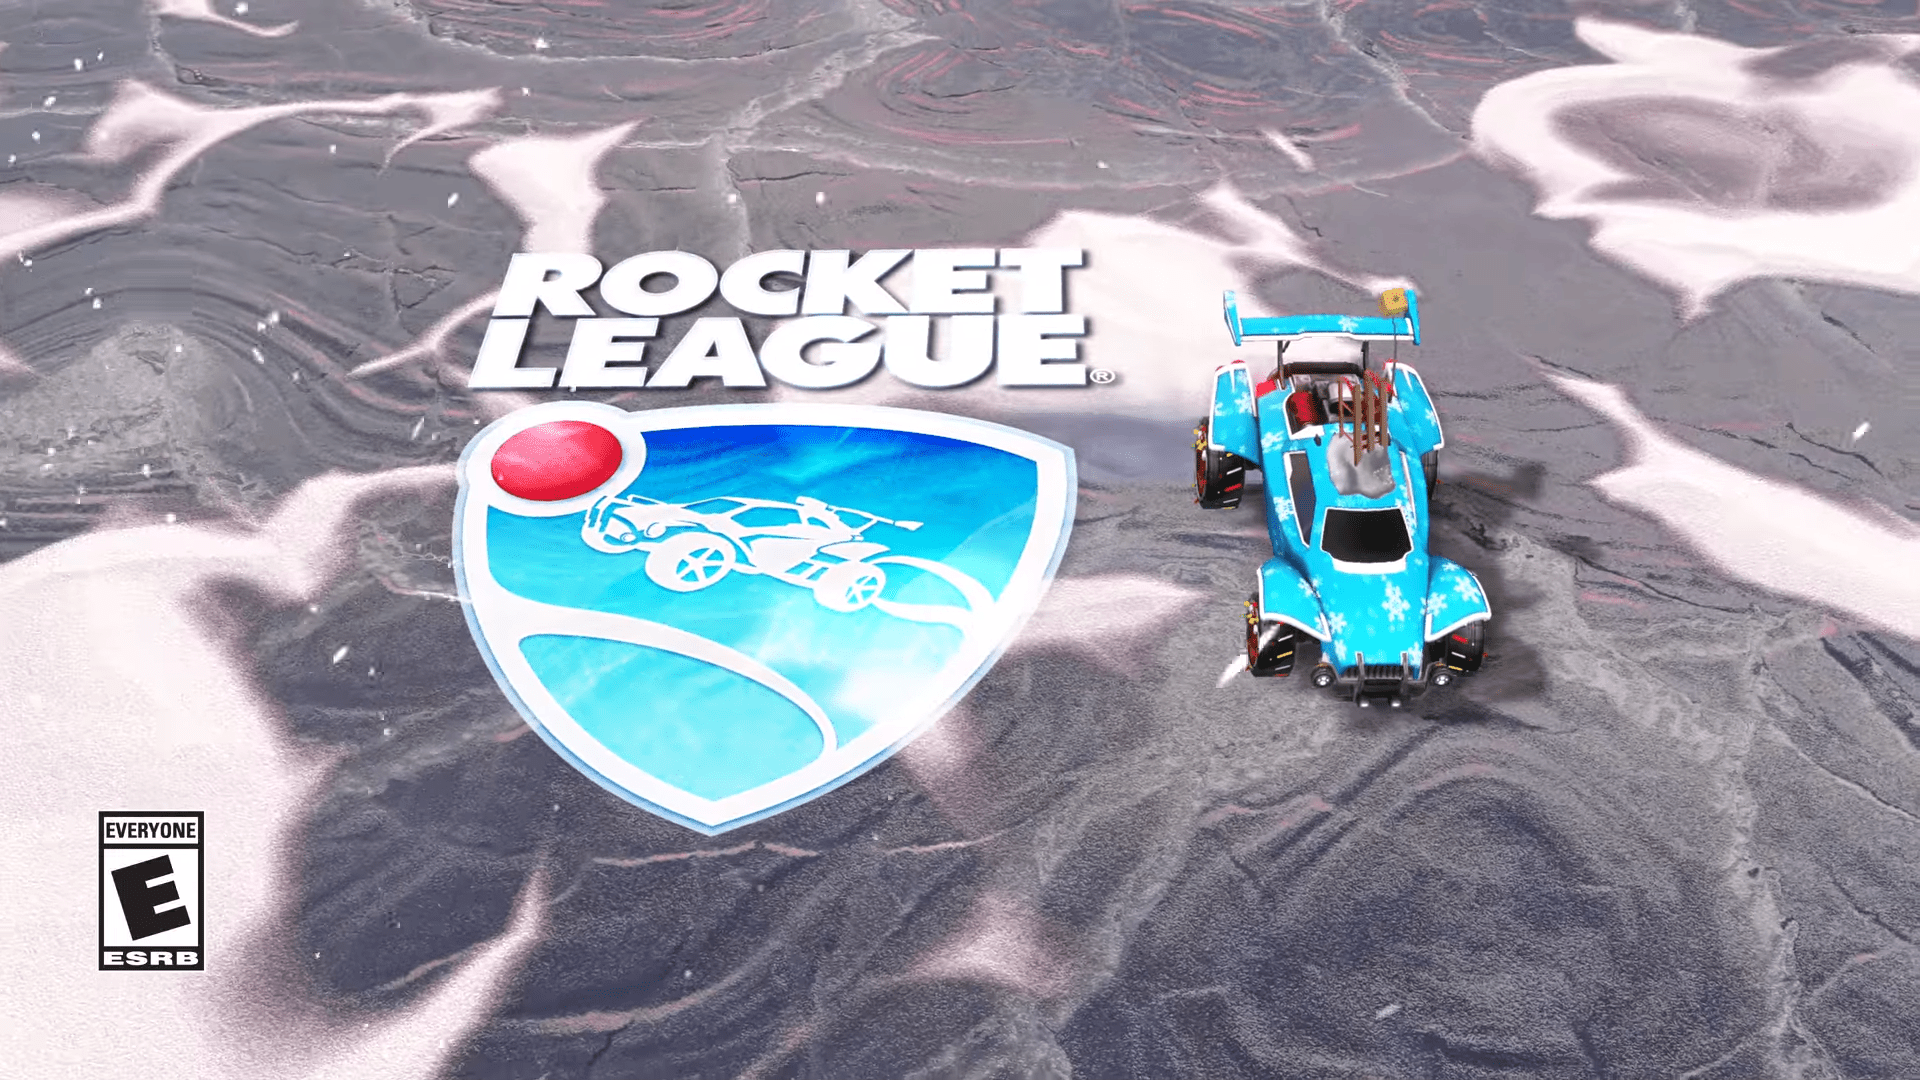 Rocket League Title Is Now Free To Play On All Major Platforms After Epic Buyout